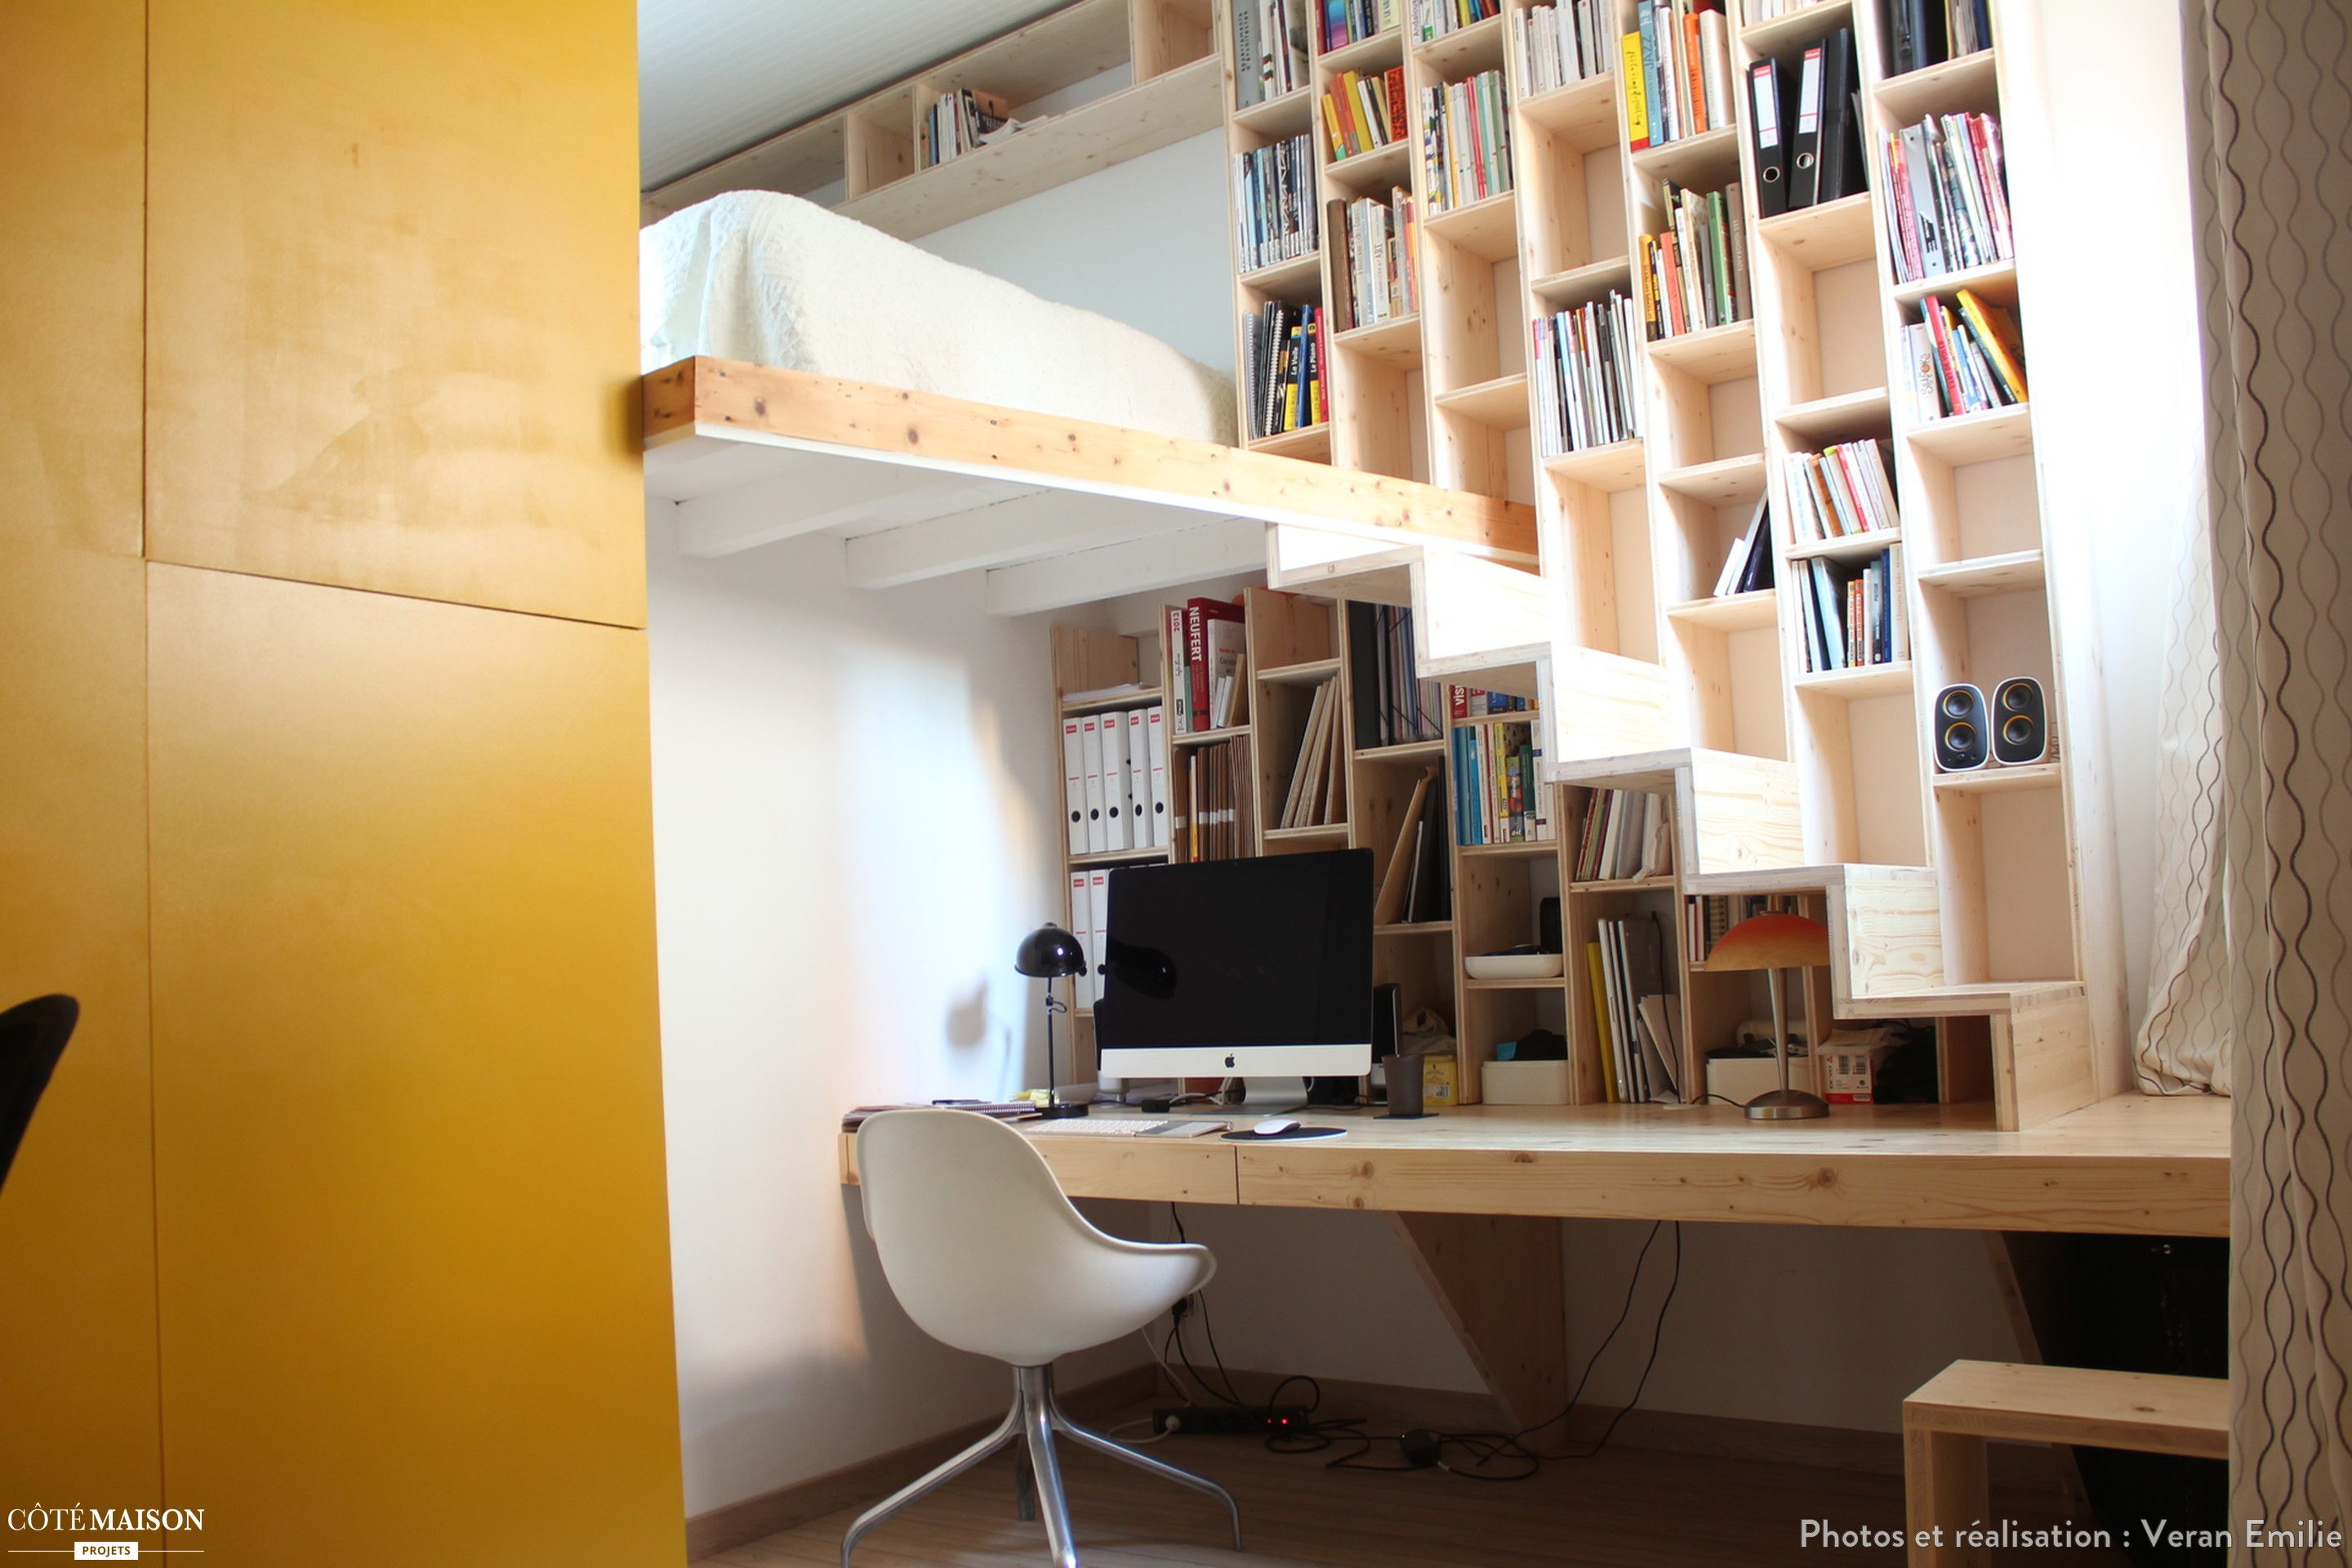 Cr Ation D Un Meuble Bureau Biblioth Que Escalier Toulouse Veran  # Creation Meuble Tv Bibliotheque Bureau